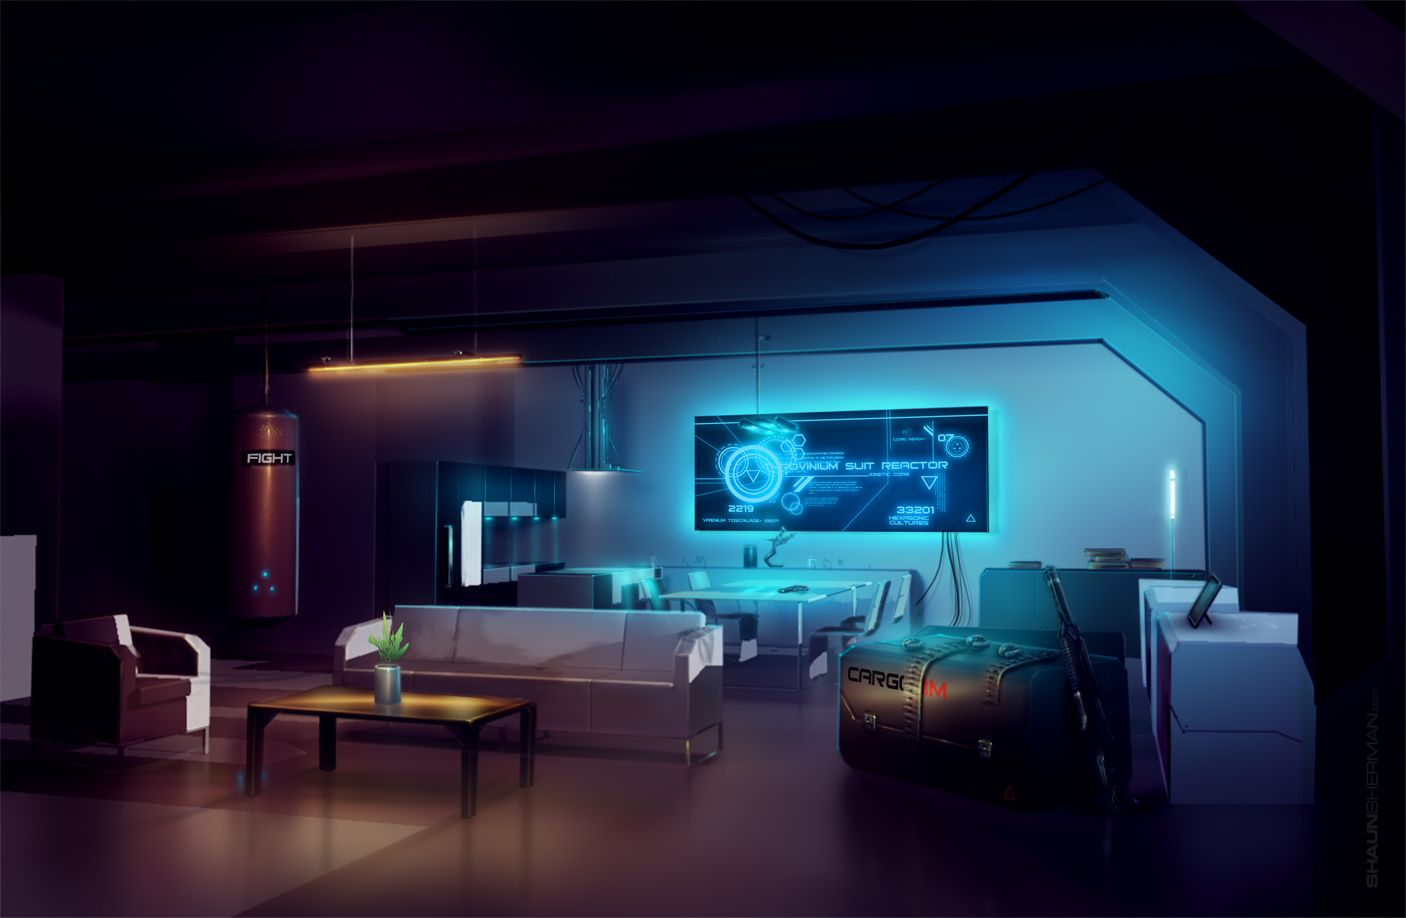 Near future interior scifi concept art by on deviantart interior - Closet ideas small spaces concept ...